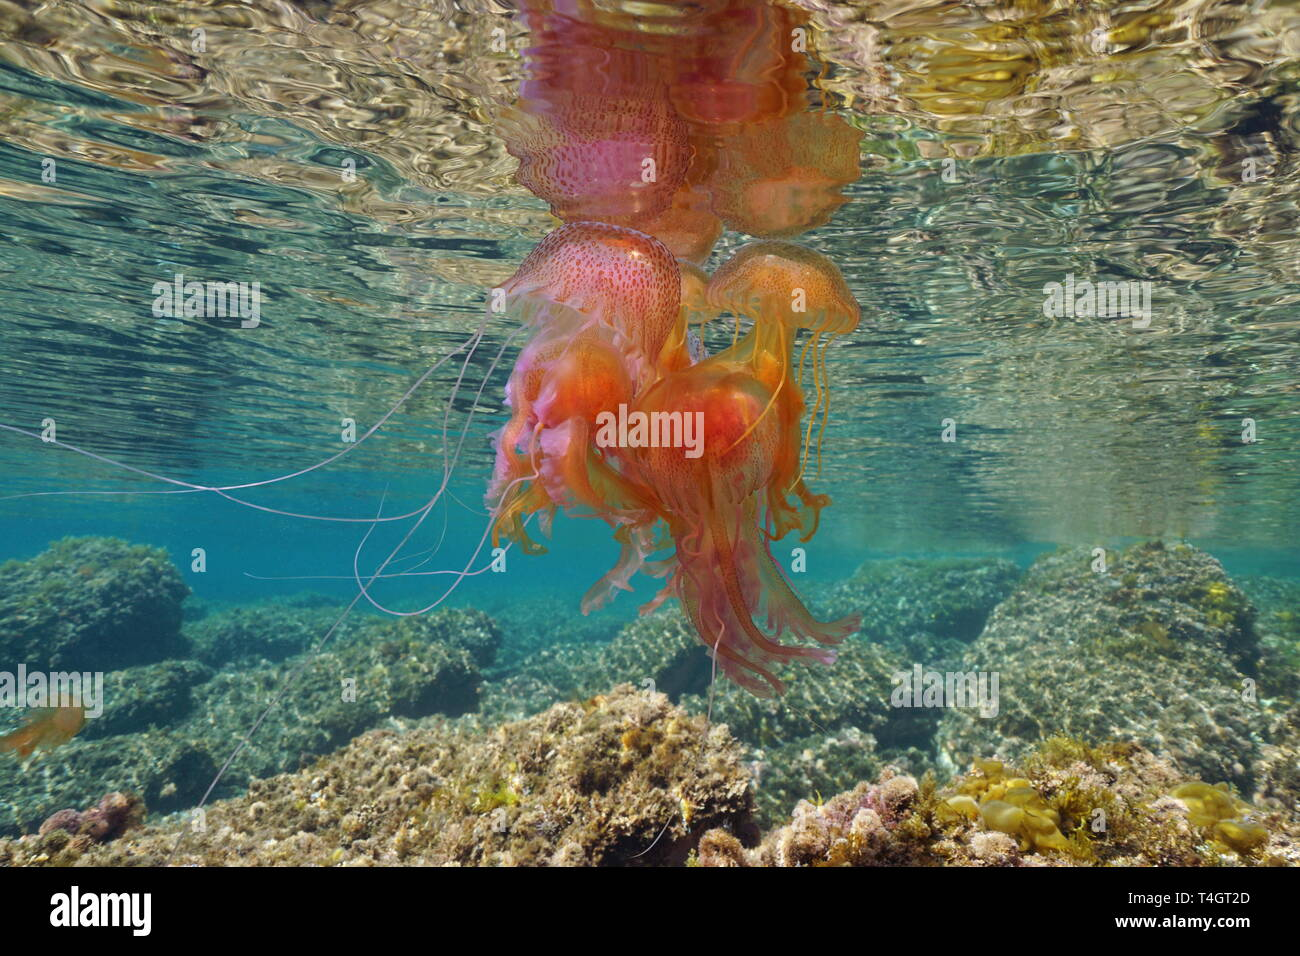 Aggregate of several jellyfish Pelagia noctiluca underwater below sea surface, Mediterranean, Spain - Stock Image